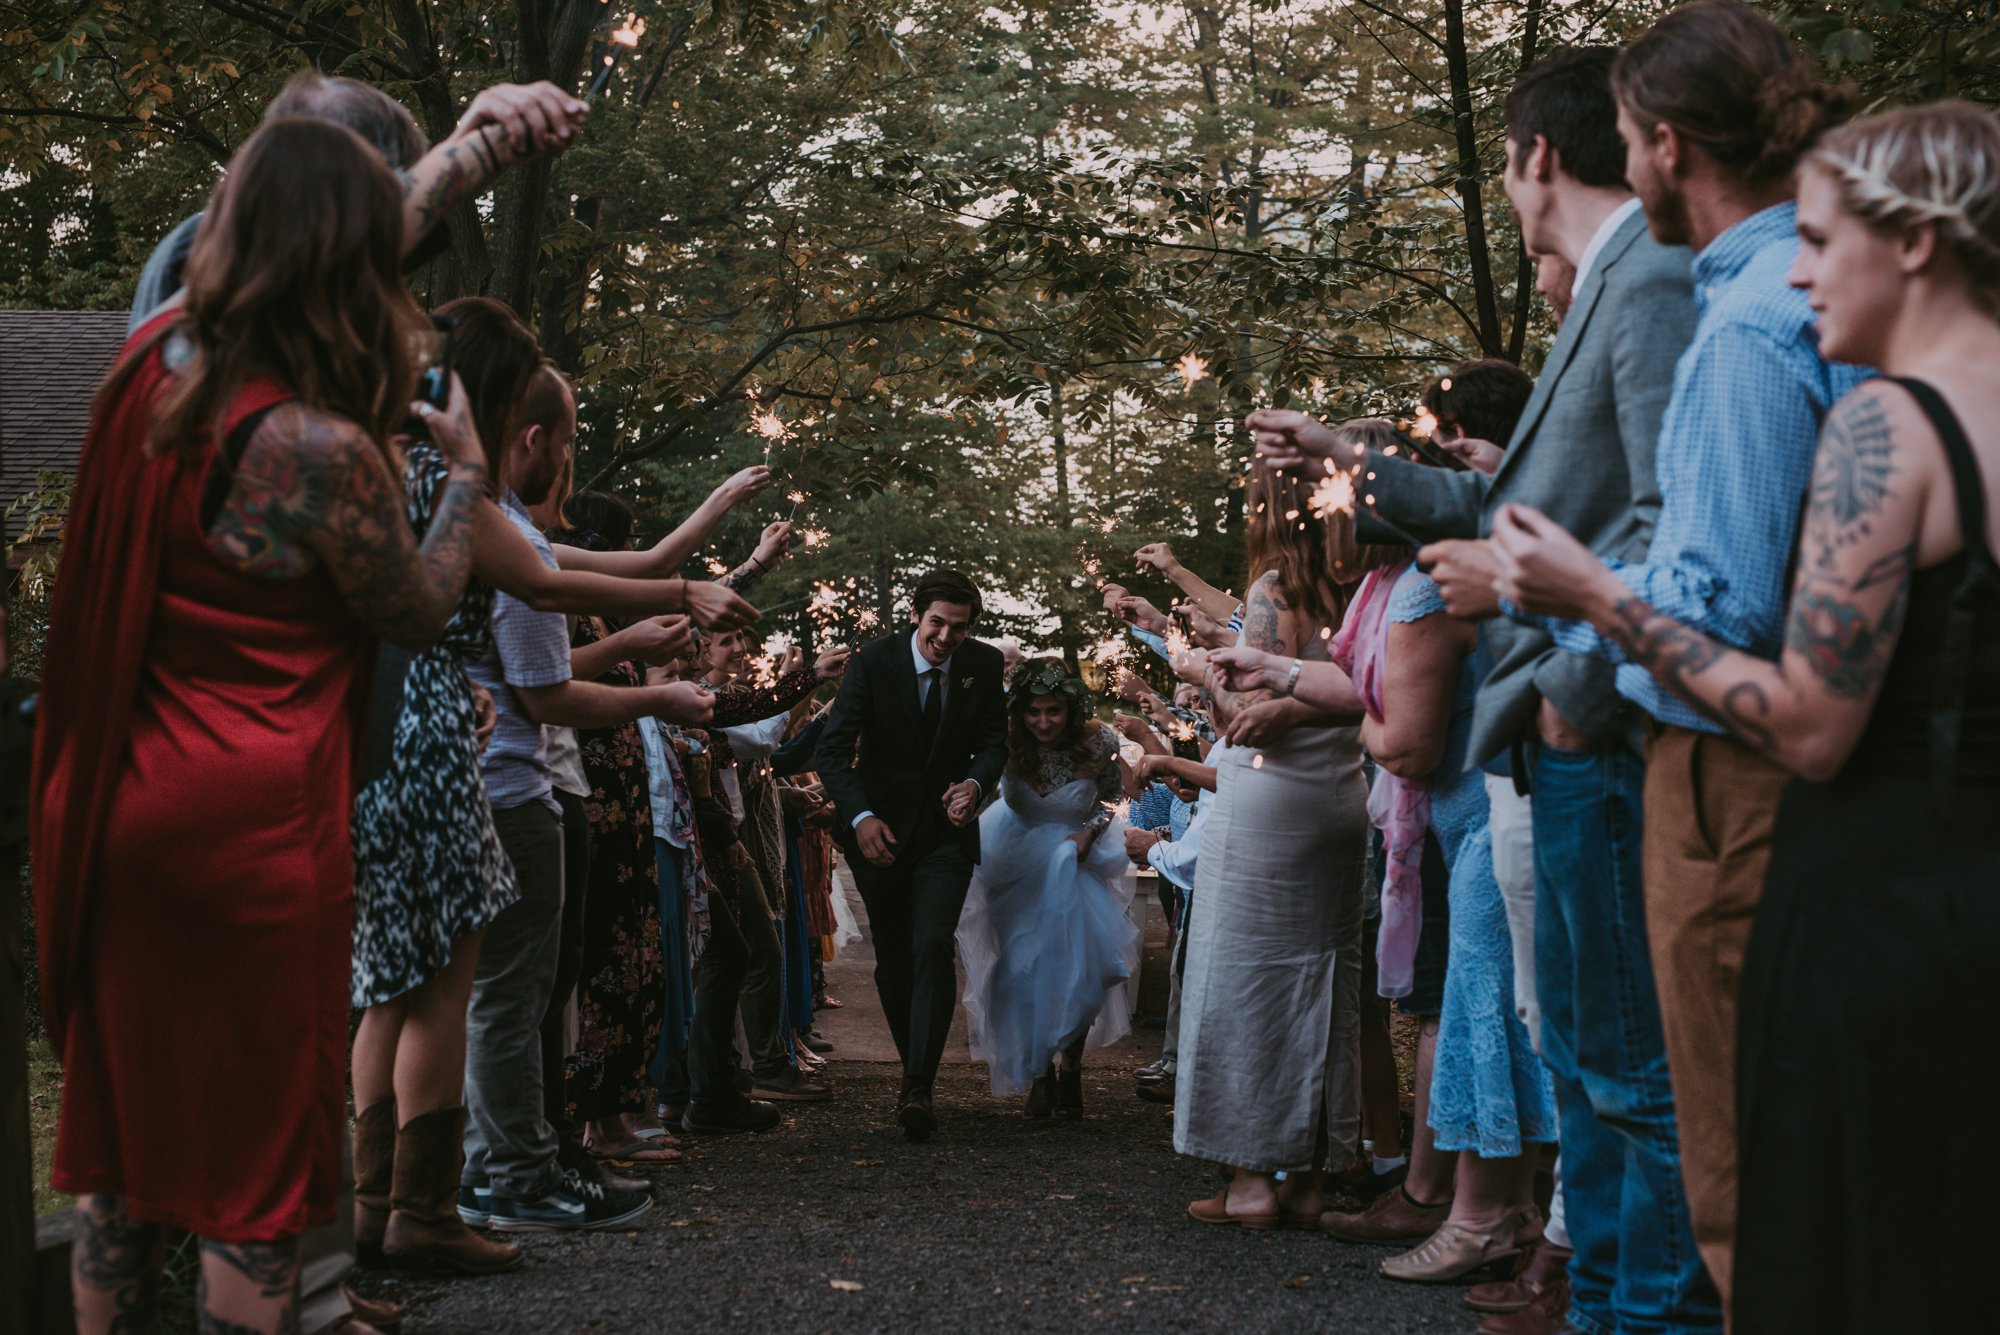 Rustic Intimate Vegan Forest Wedding with Handmade Dress. Sparkler Exit.